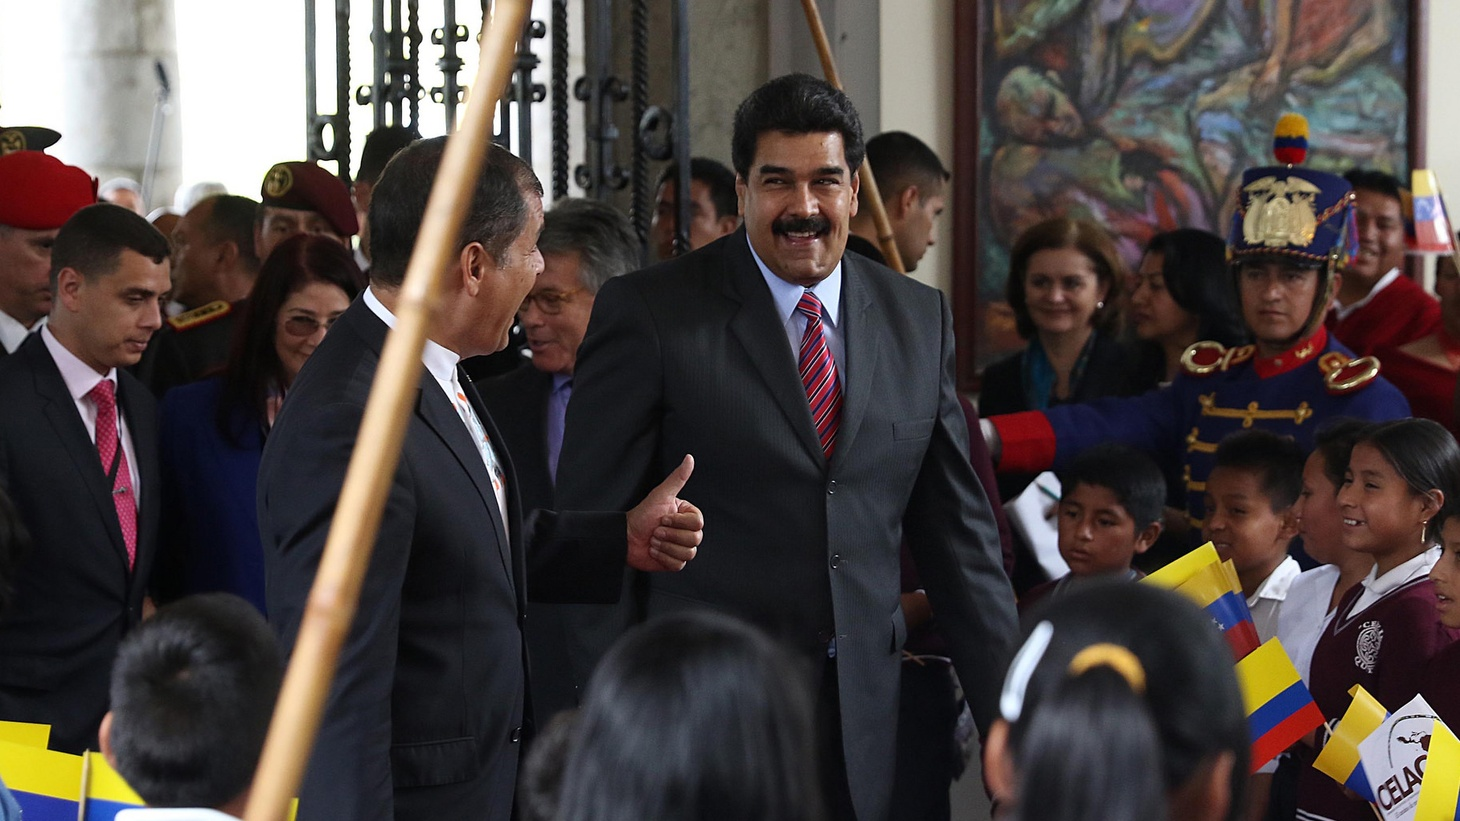 In Venezuela, an economic crisis is causing a public health crisis and President Nicolas Maduro has imposed a state of emergency amid real concern that his government is on the verge of collapse. Nicholas Casey is in Caracas, reporting for the  New York Times .       Photo: President Nicolas Maduro ( Agencia de Noticias ANDES )